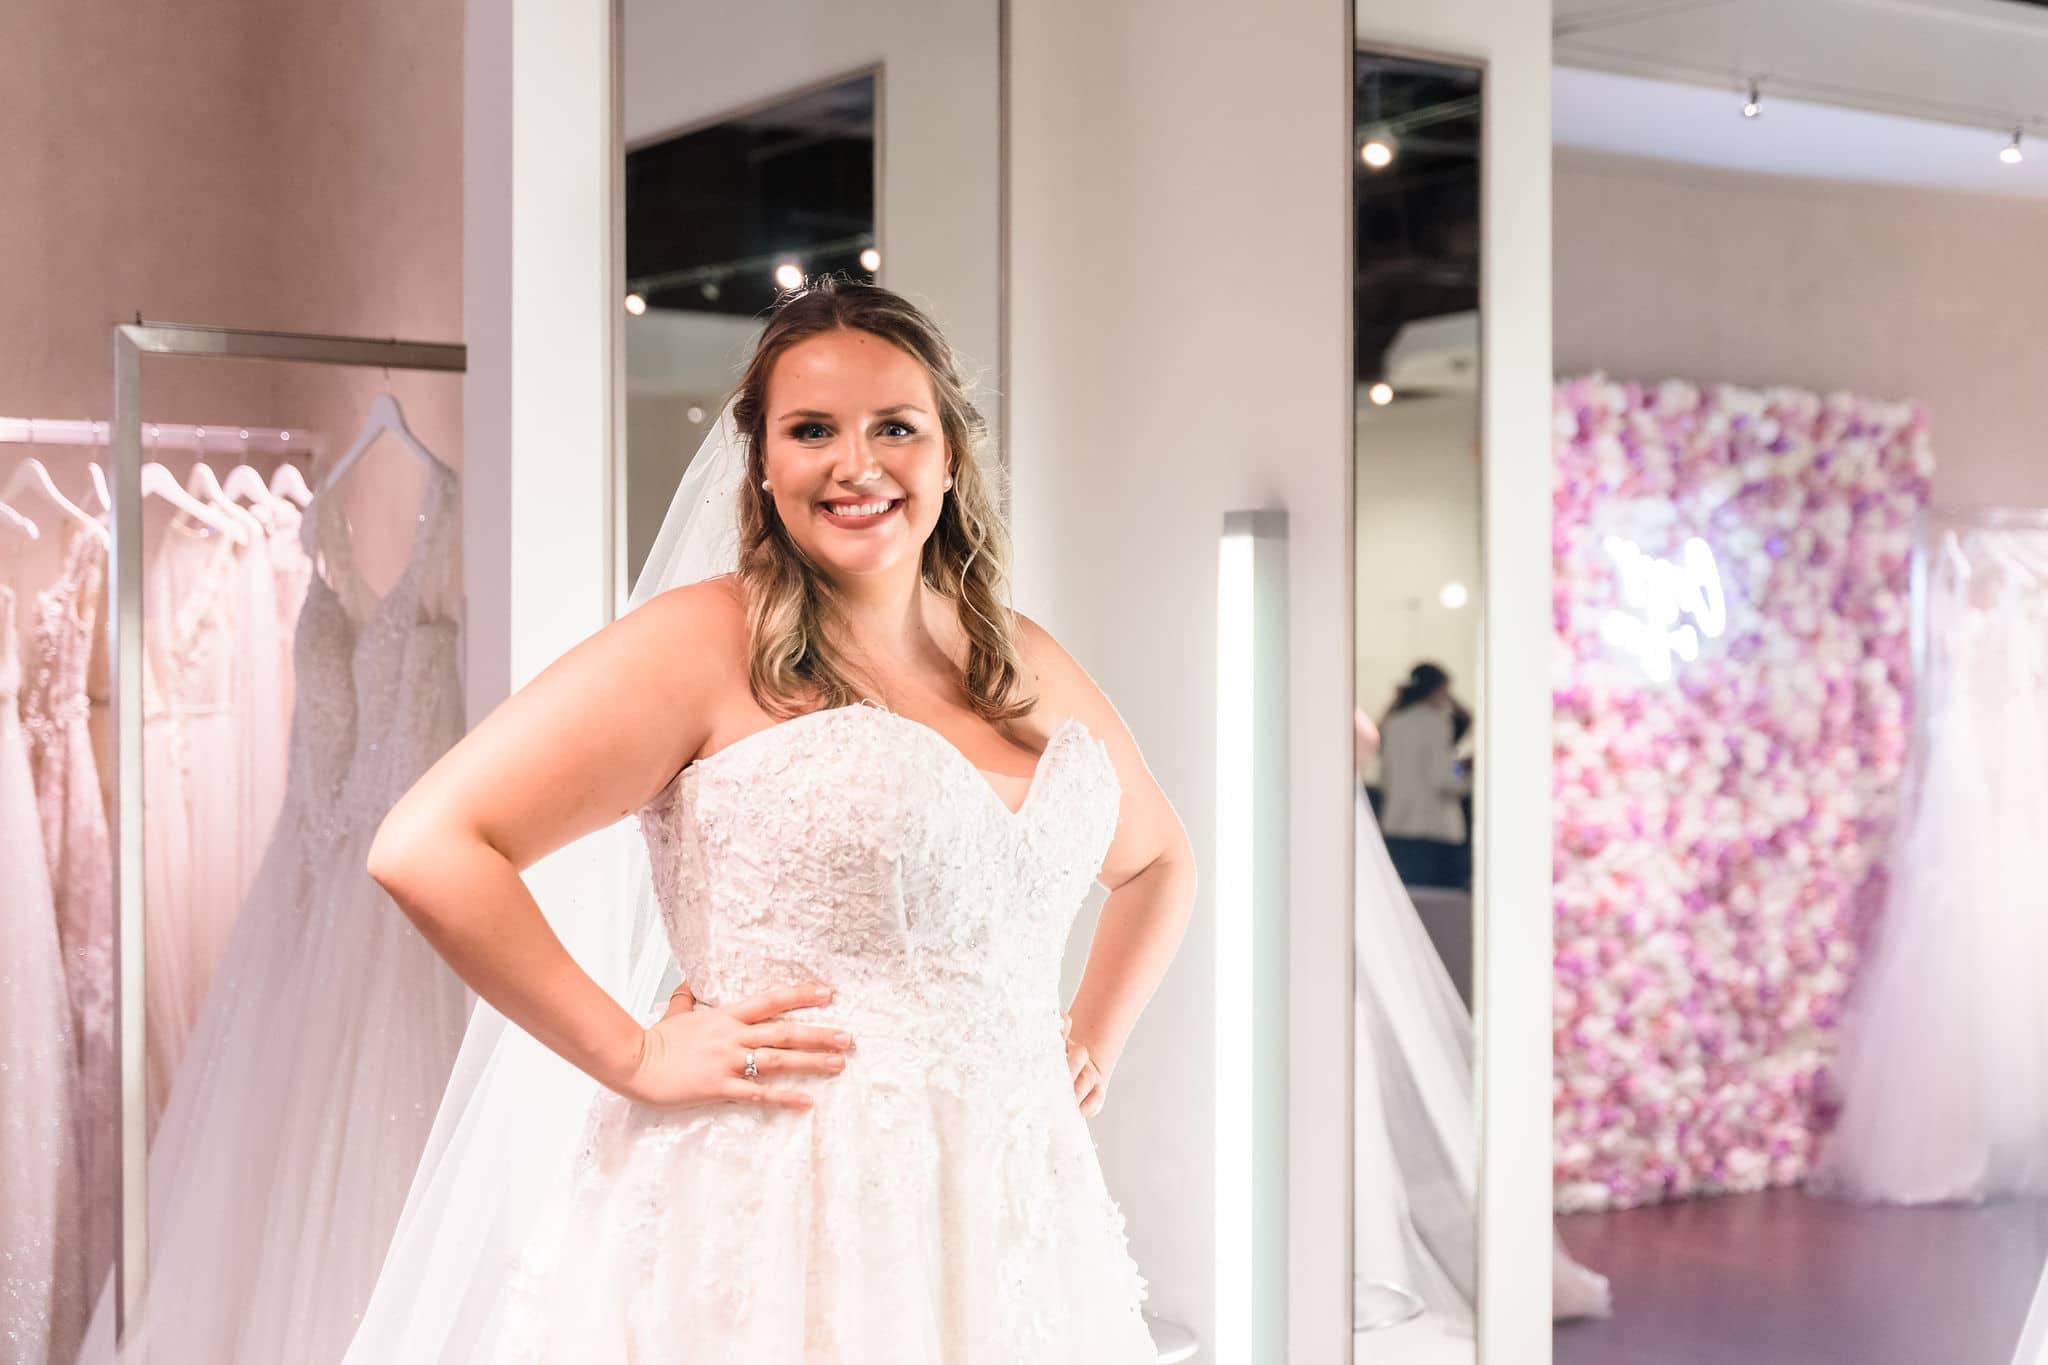 orlando plus size bridal dress shopping experience